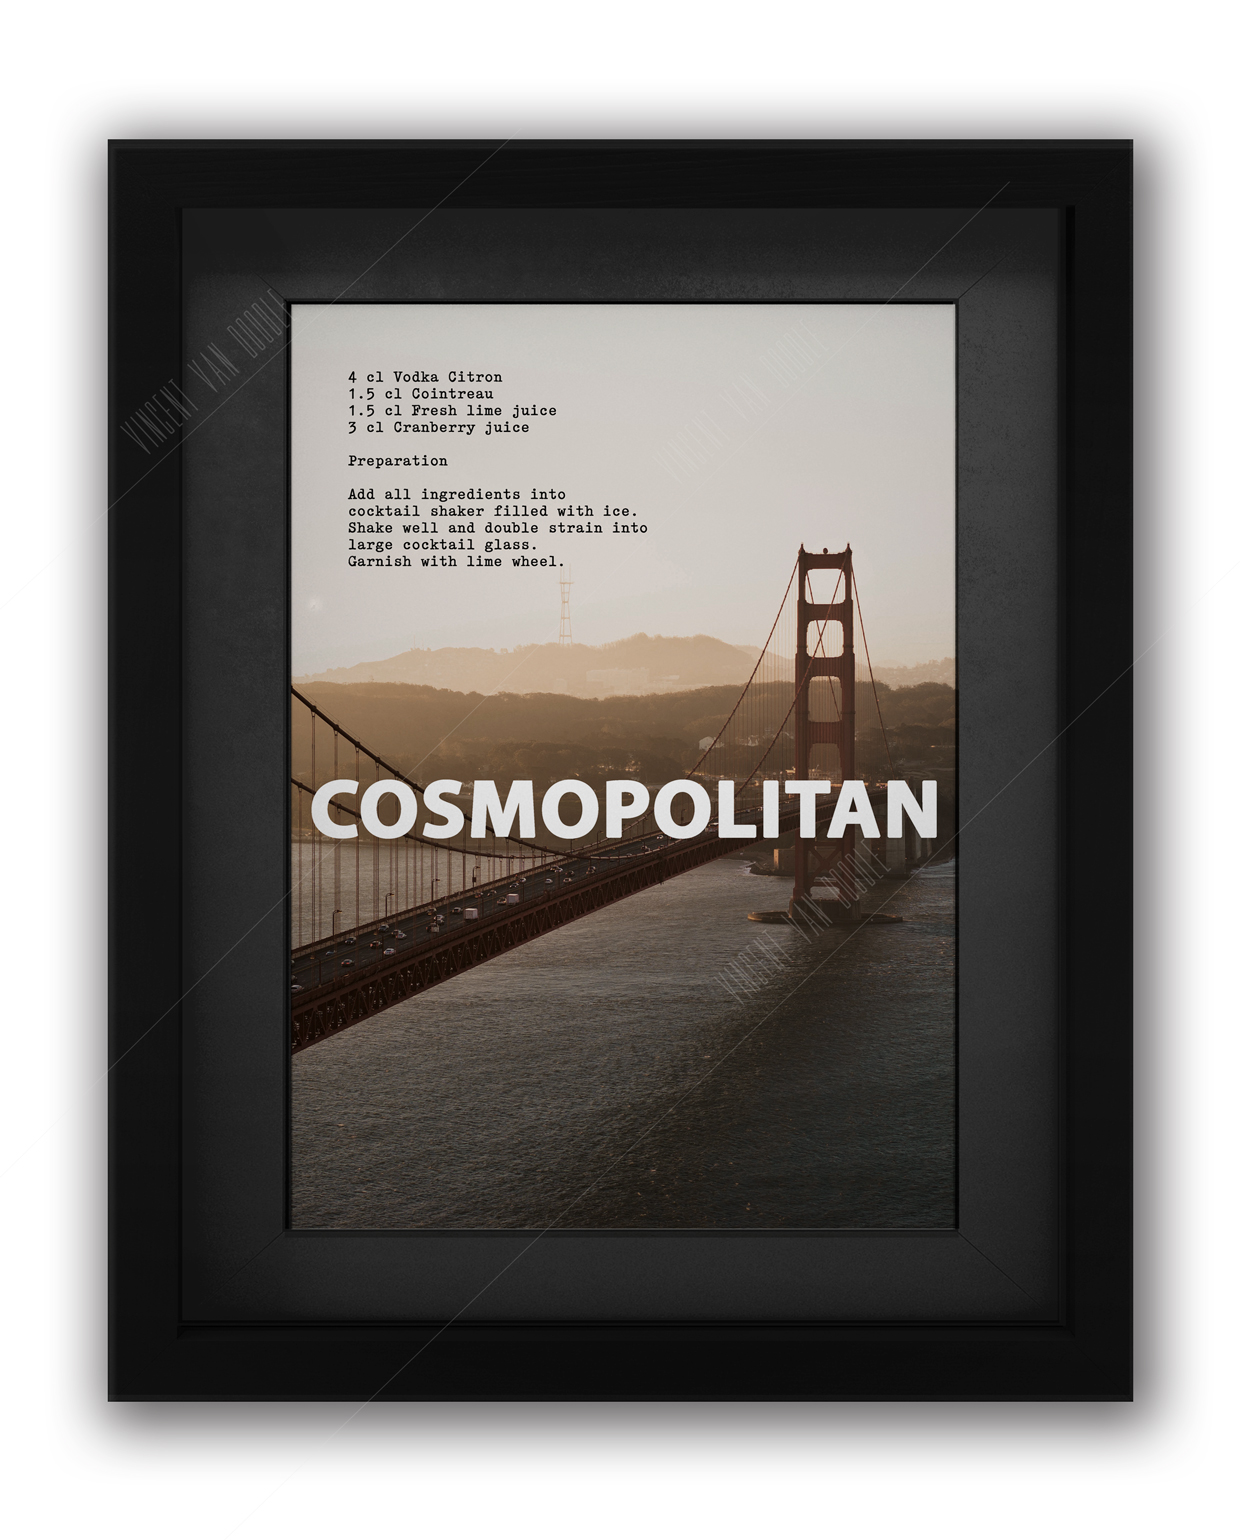 Cosmopolitan Cocktail Recipe Print in Black